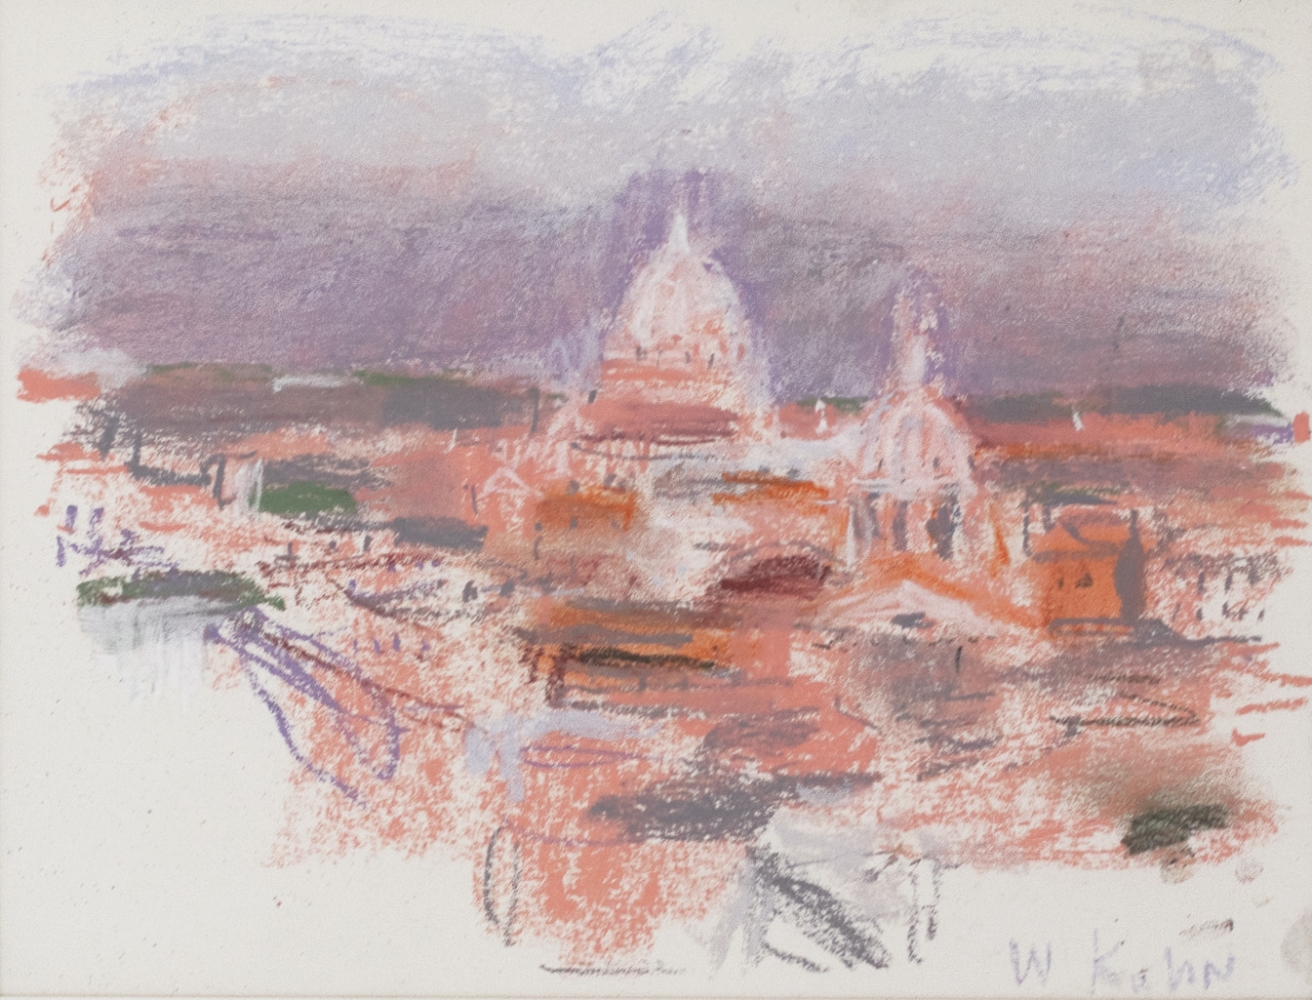 Wolf Kahn, From the Roof of Hotel Hassler, 2001, Pastel, 9 x 12 inches, wolf kahn pastel, Wolf Kahn Pastels for sale